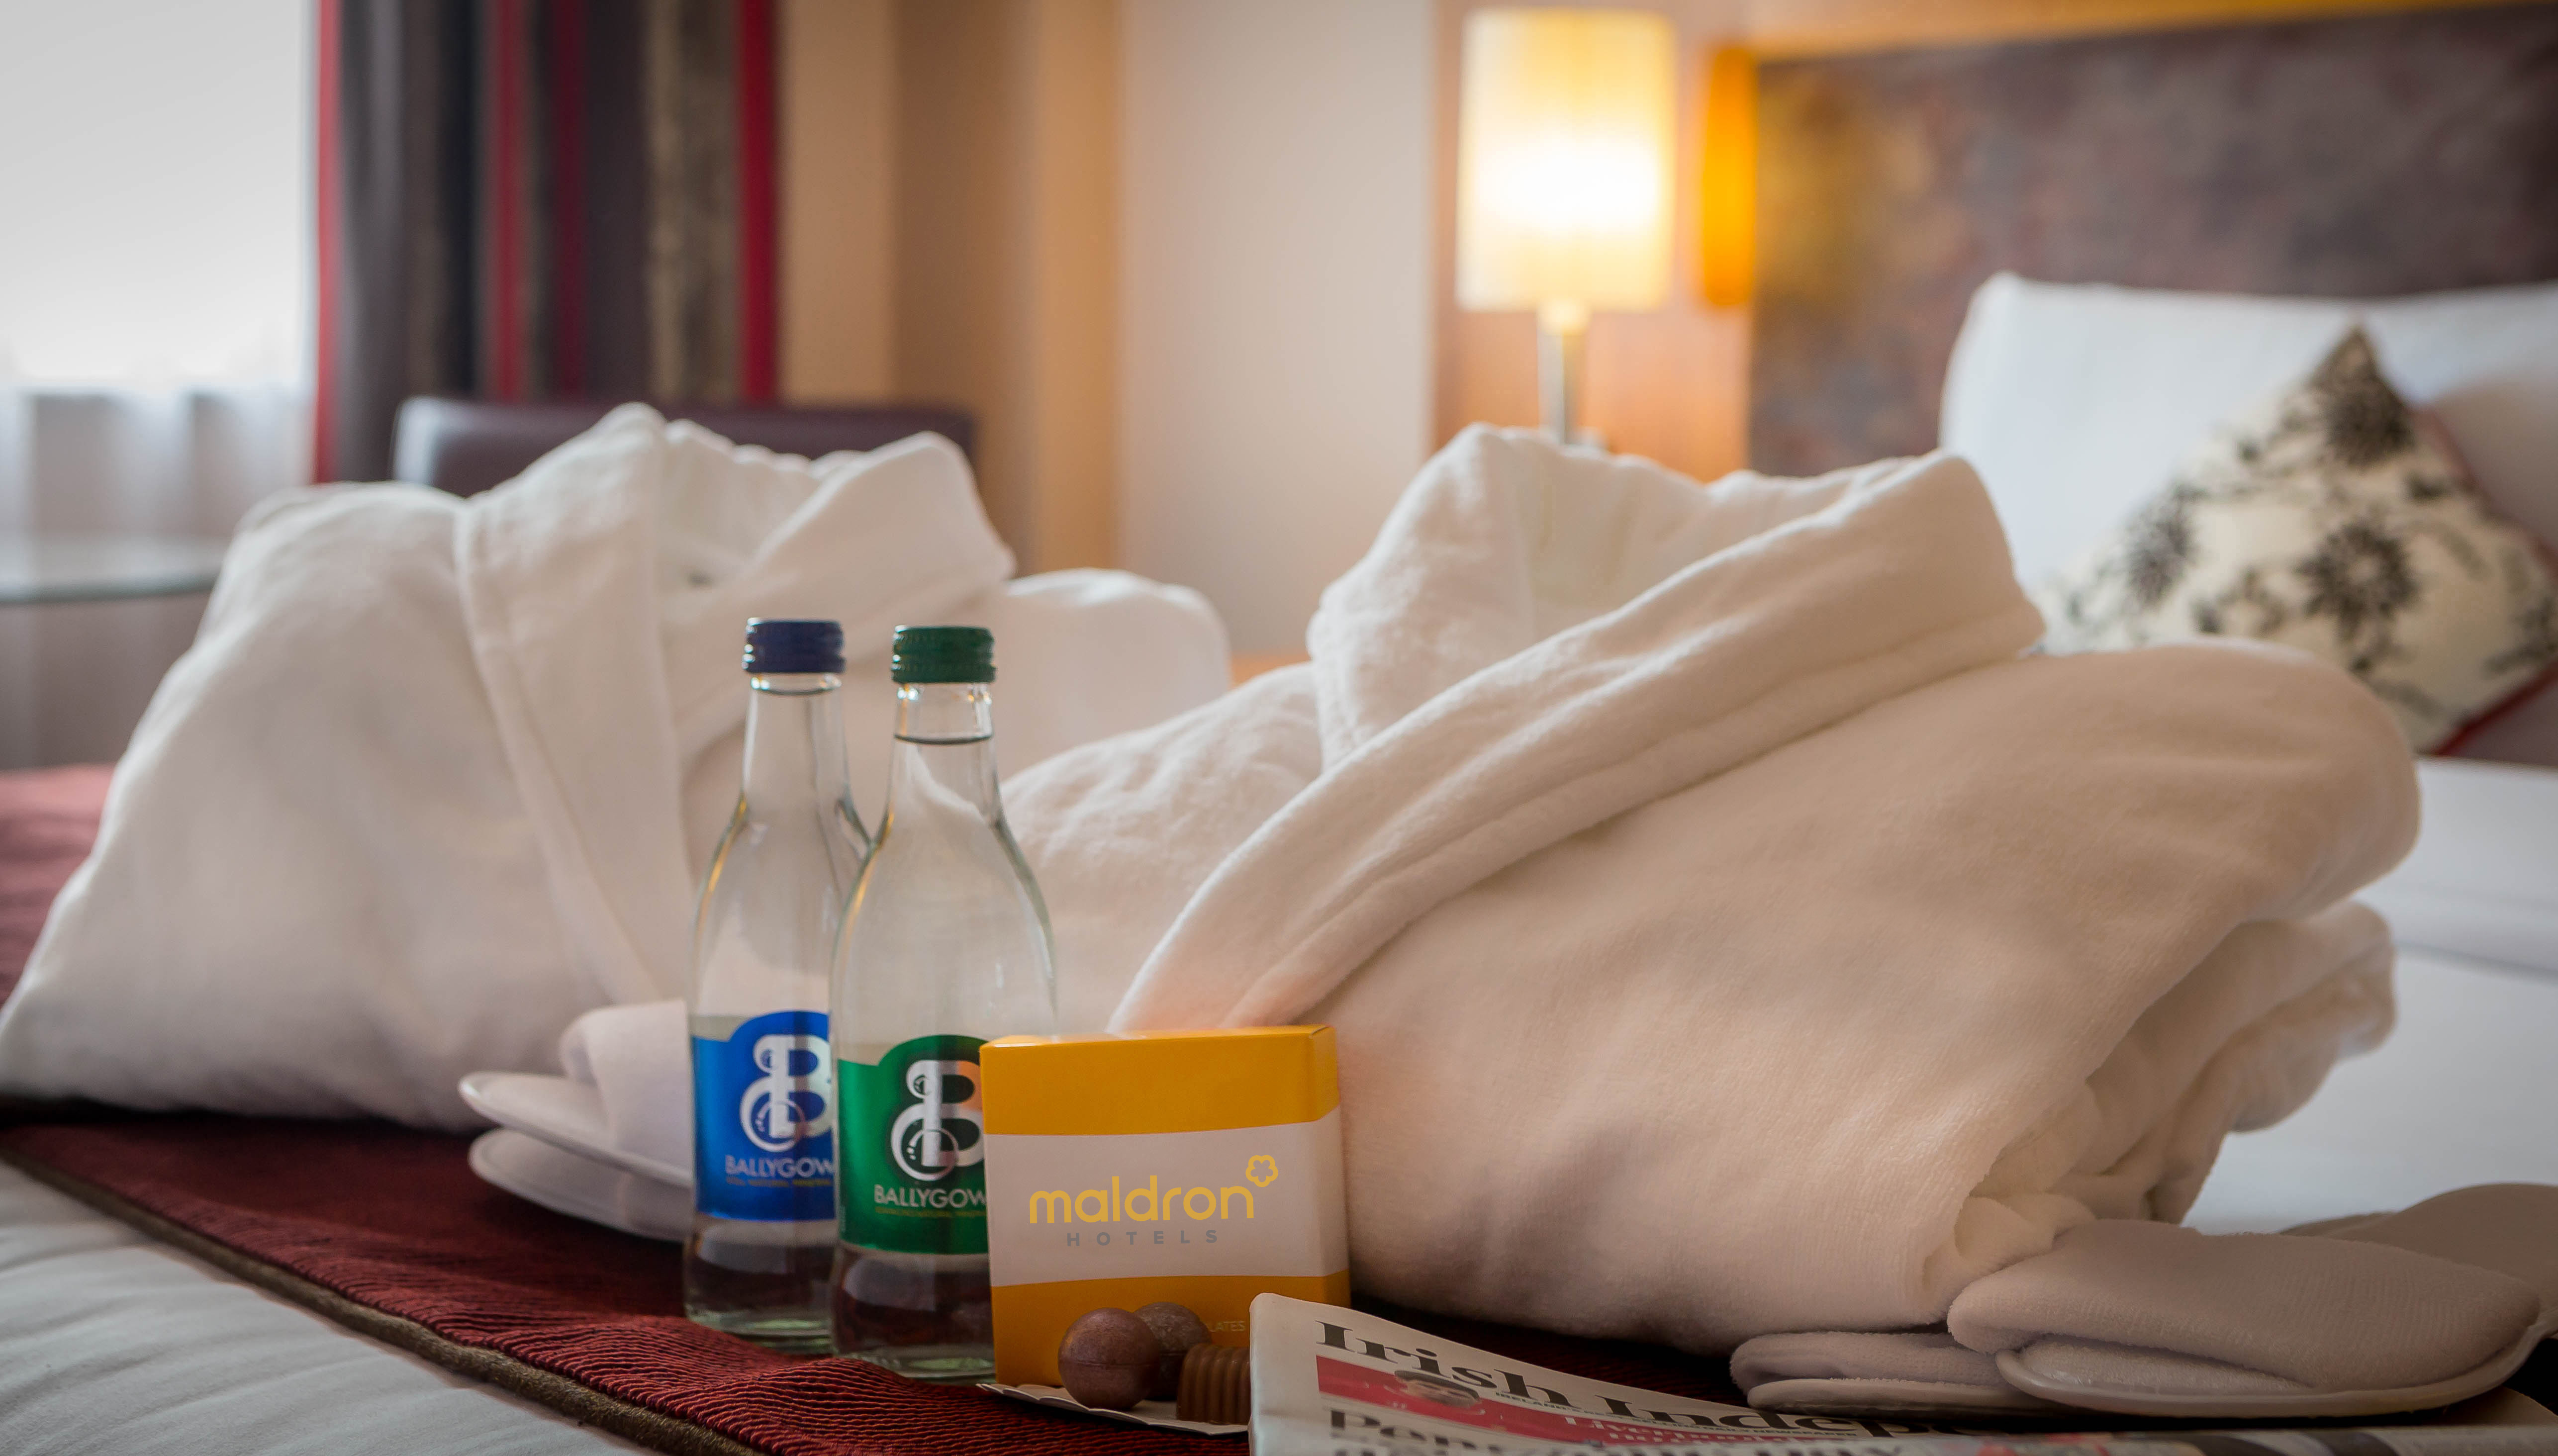 fluffy-bathrobes-and-mineral-water-in-Maldron-Hotel-Parnell-Square-Dublin-Executive-Room